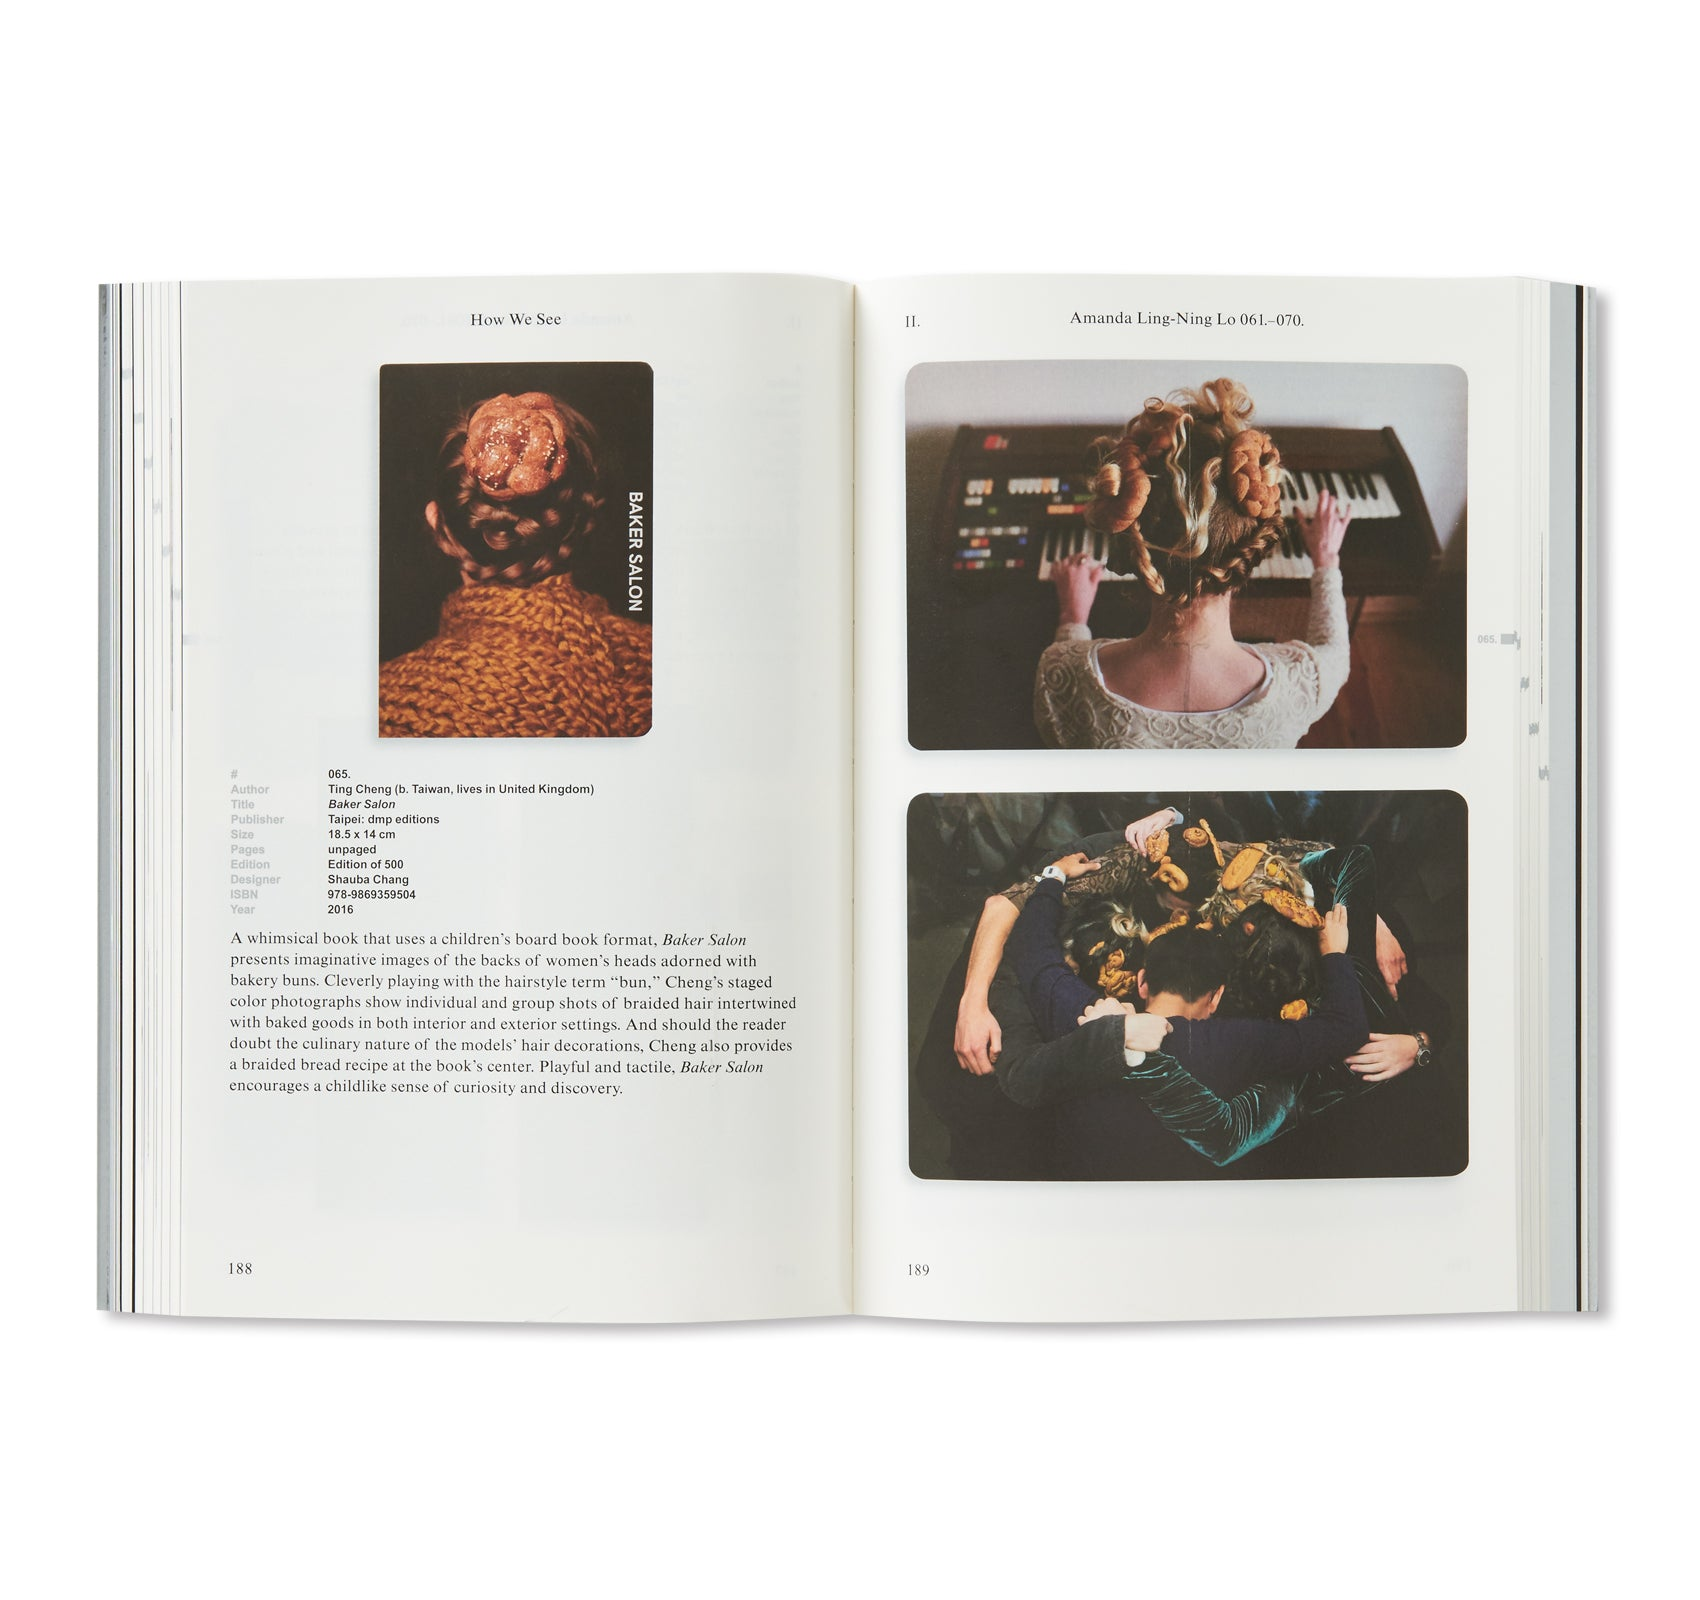 HOW WE SEE: PHOTOBOOKS BY WOMEN